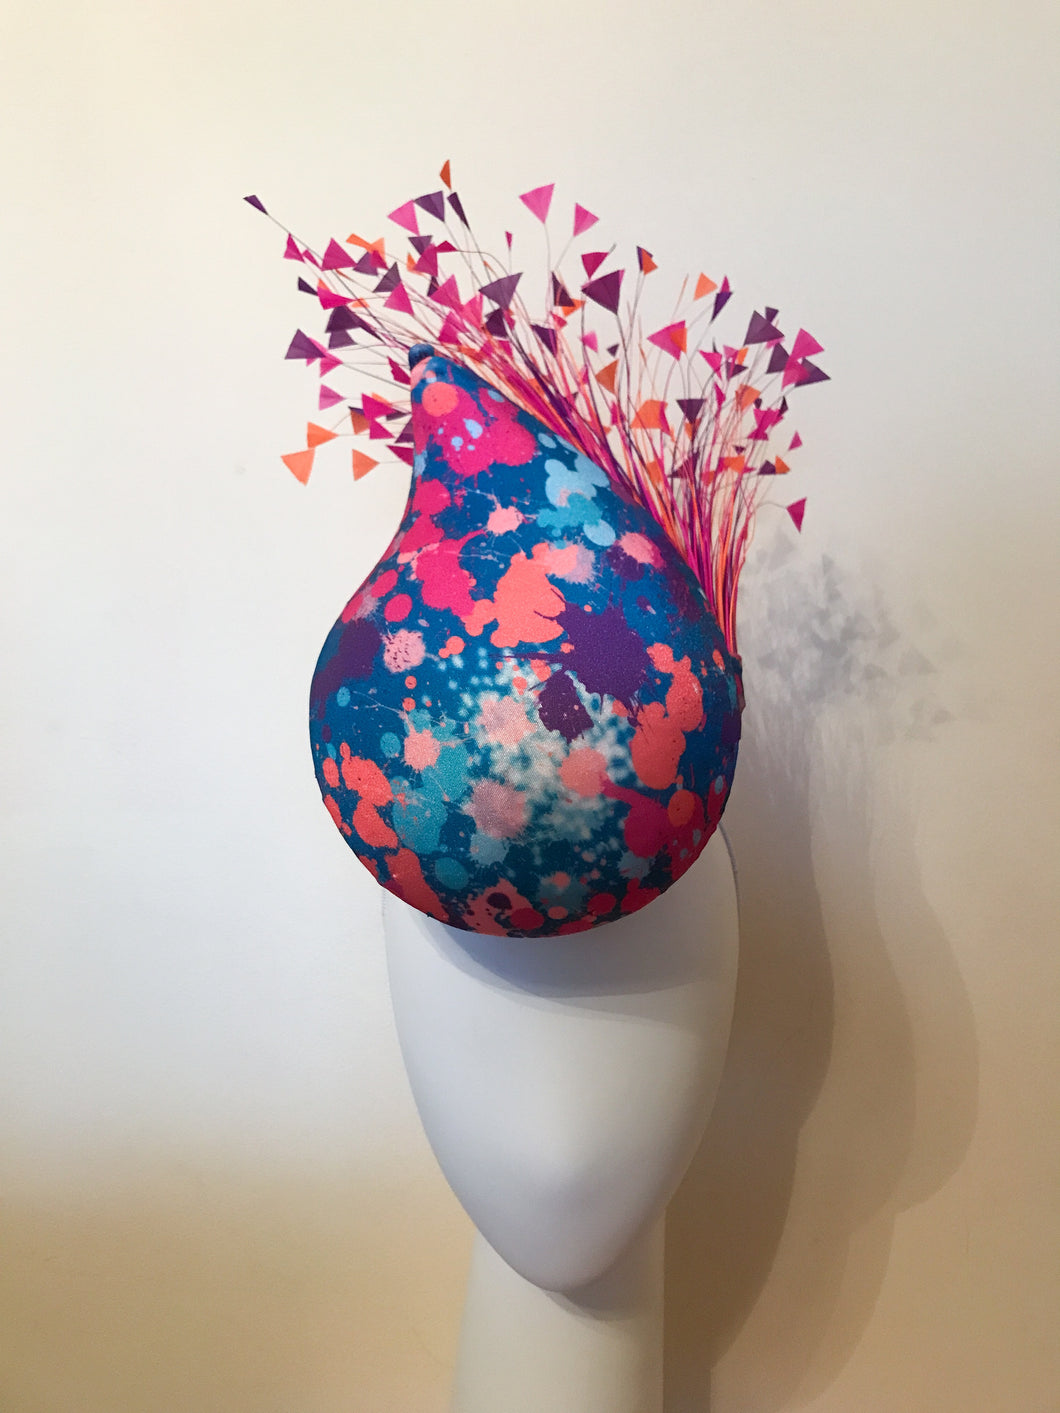 Colour Burst 3D Percher Teardrop with Hand Cut Feather Spray